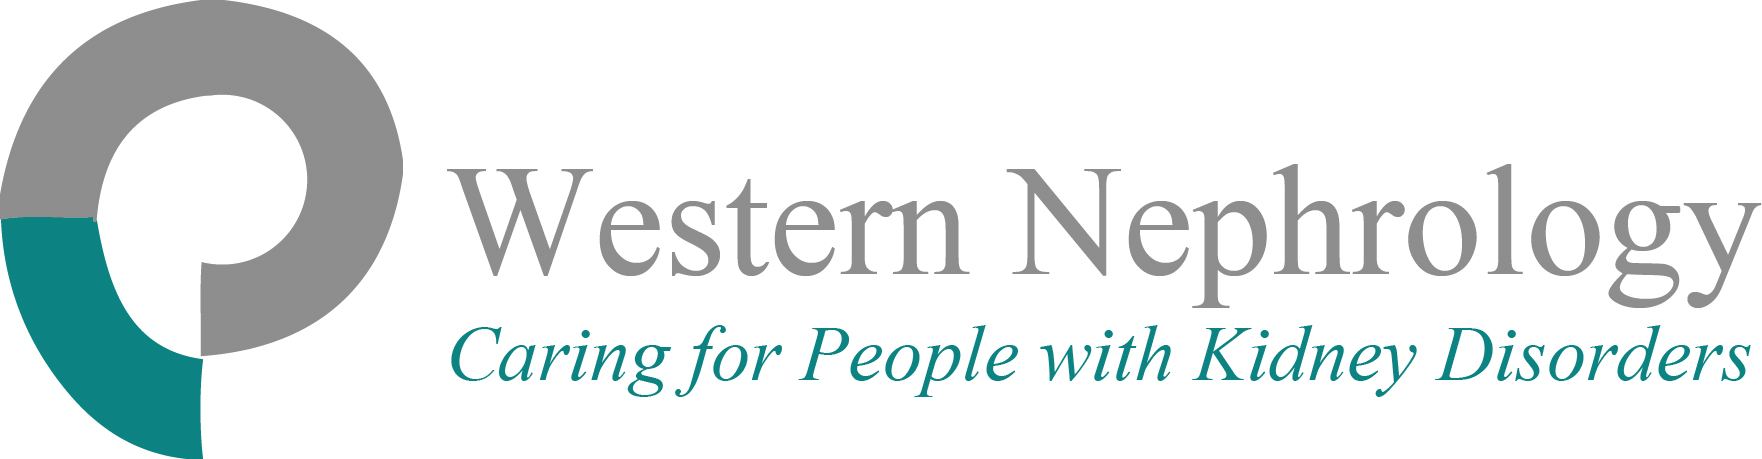 Western Nephrology - Caring for People with Kidney Disorders